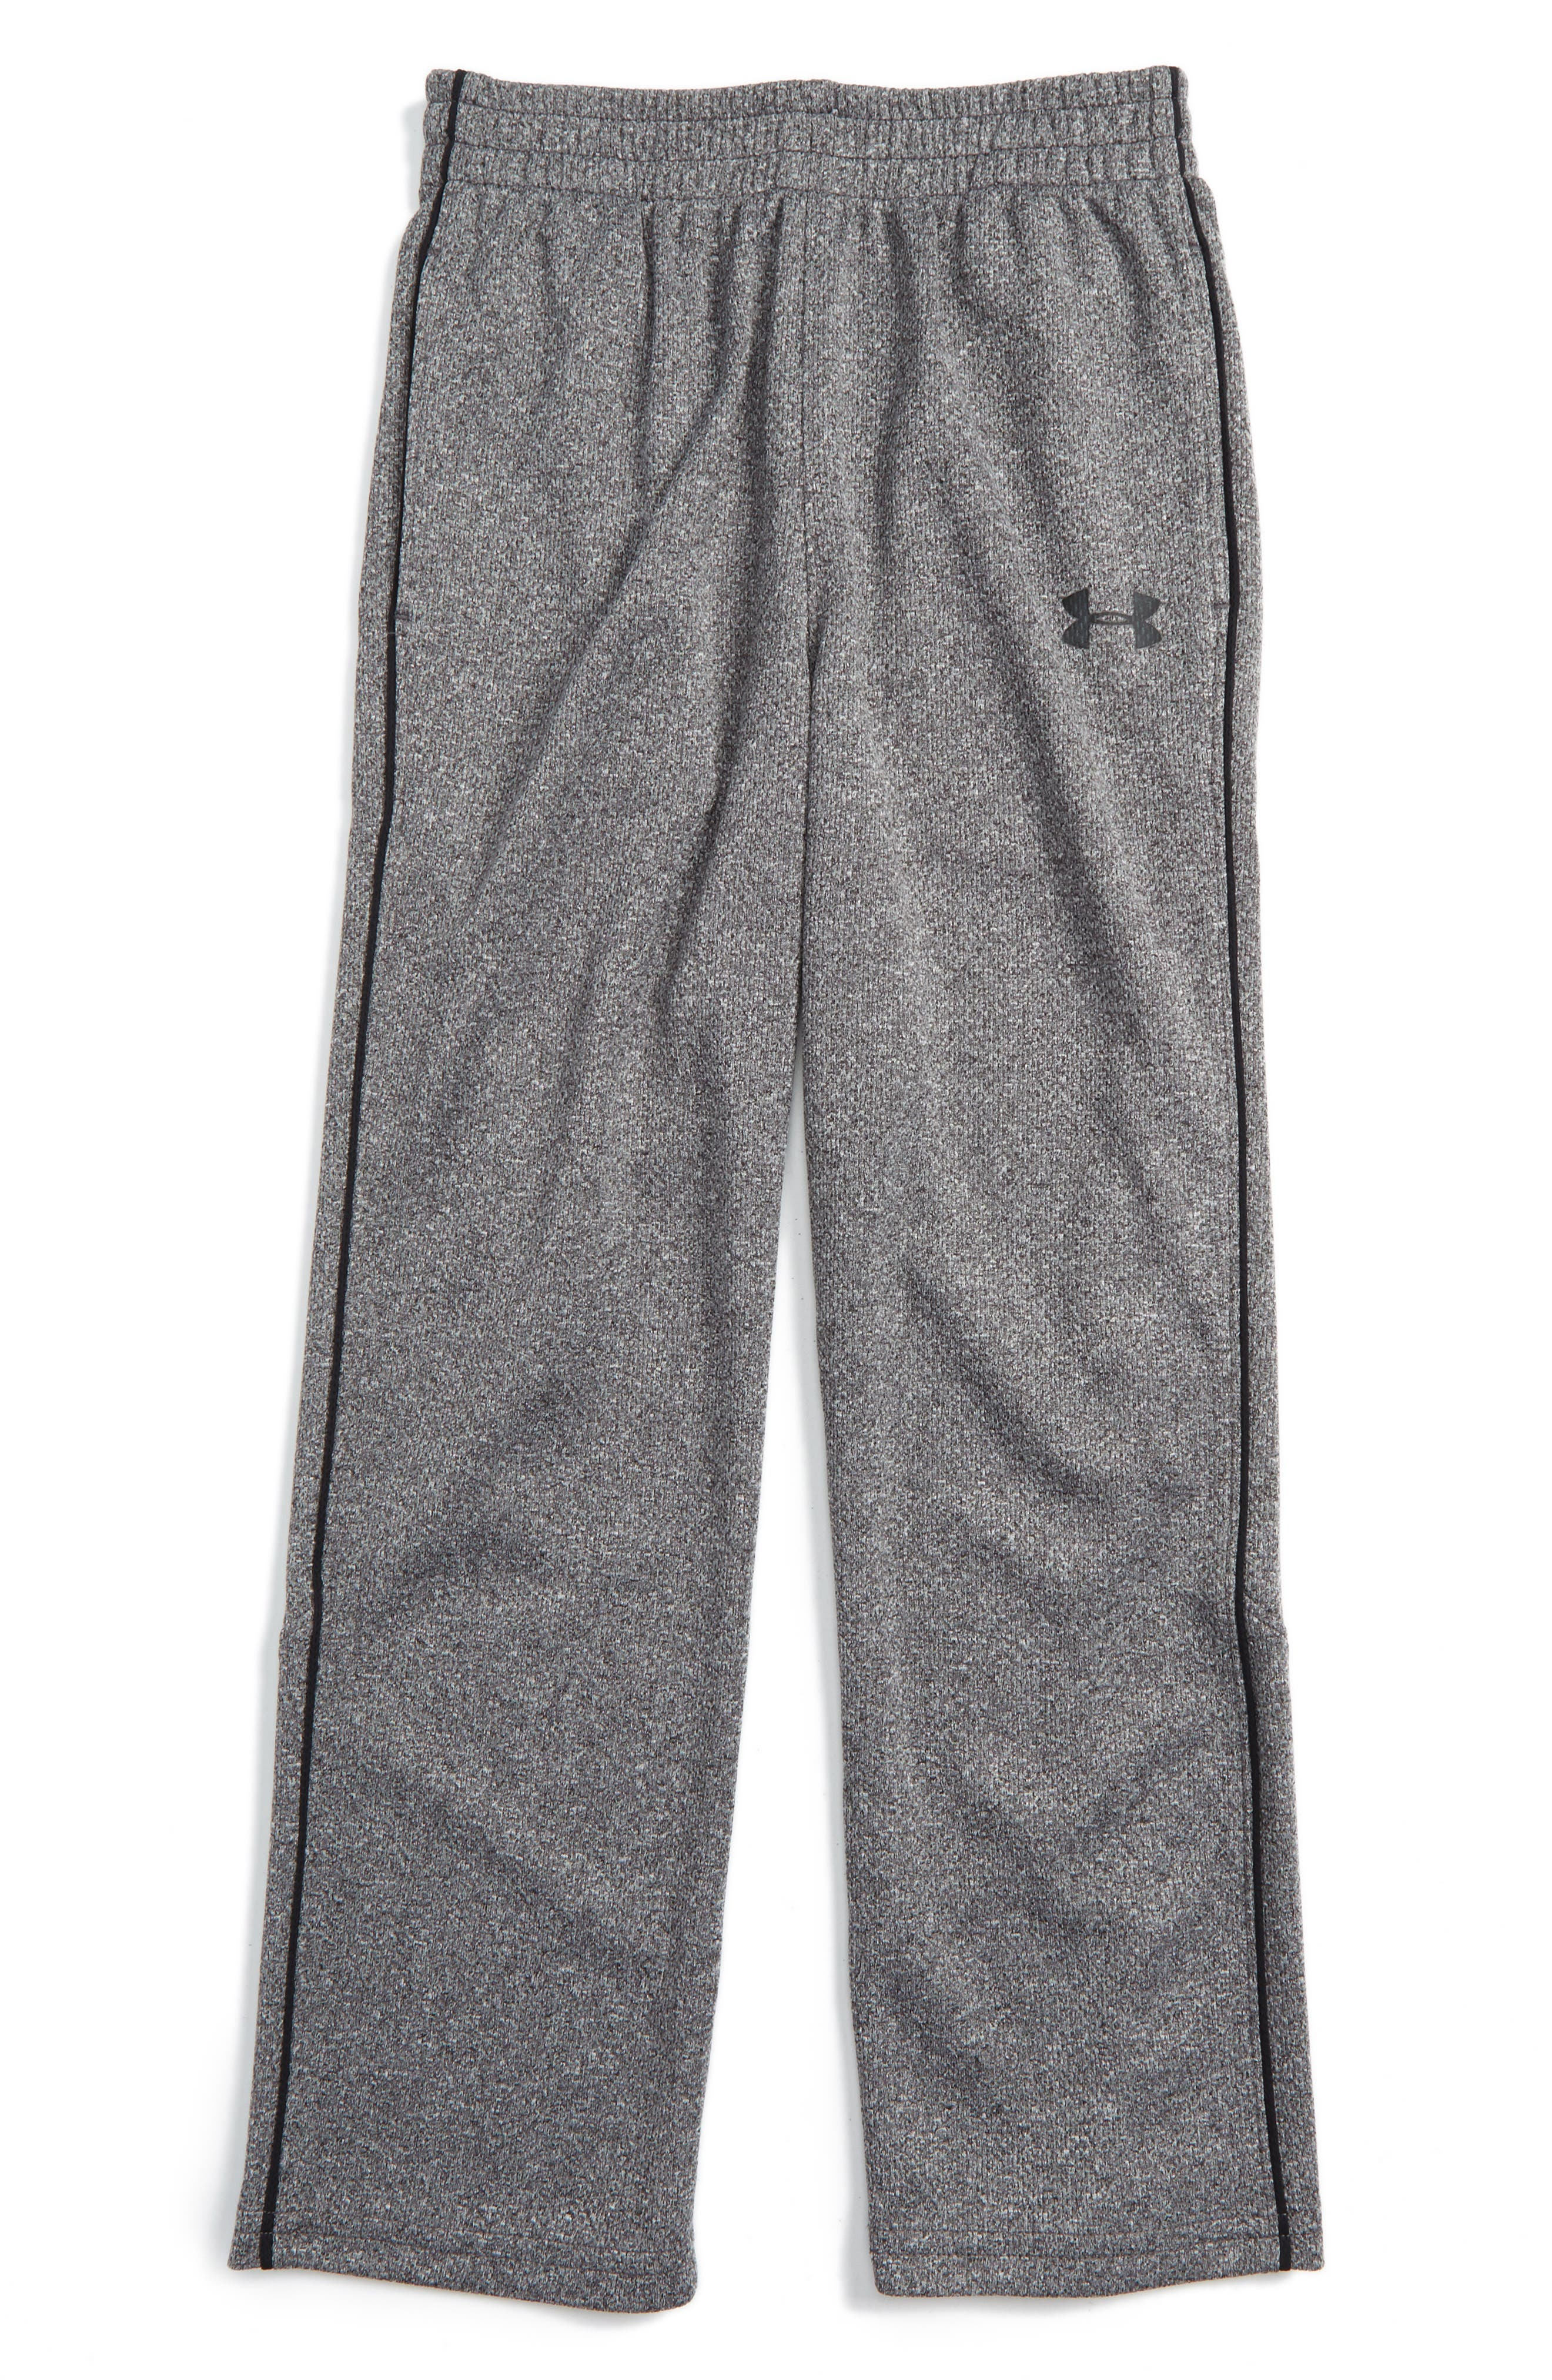 Midweight Champ Warm-Up Pants,                         Main,                         color, Carbon Heather